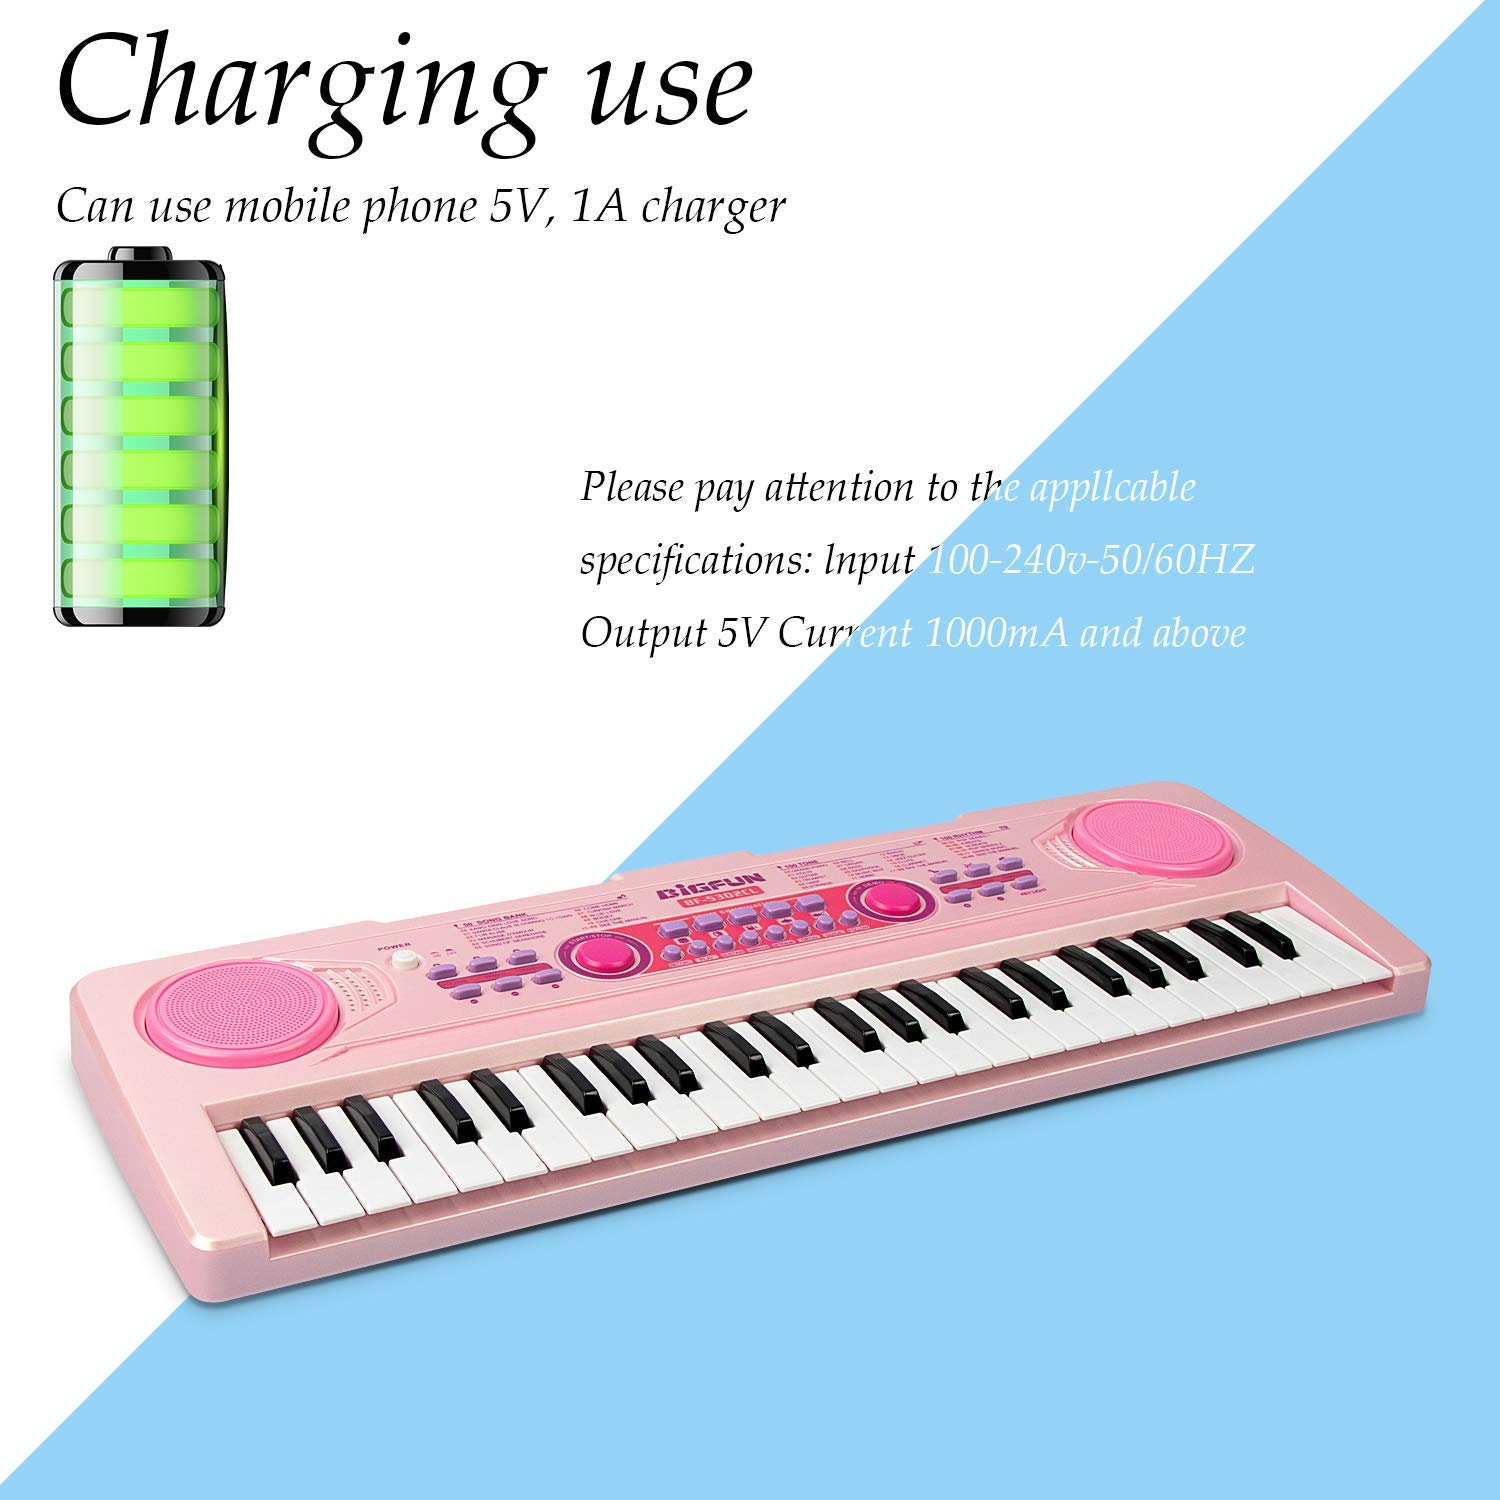 SAOCOOL Piano Keyboard, 49 Keys Multi-Function Charging Electronic Kids Piano Keyboard Music Educational Toy for Children Over 3 Years Old (Pink) by SAOCOOL (Image #3)